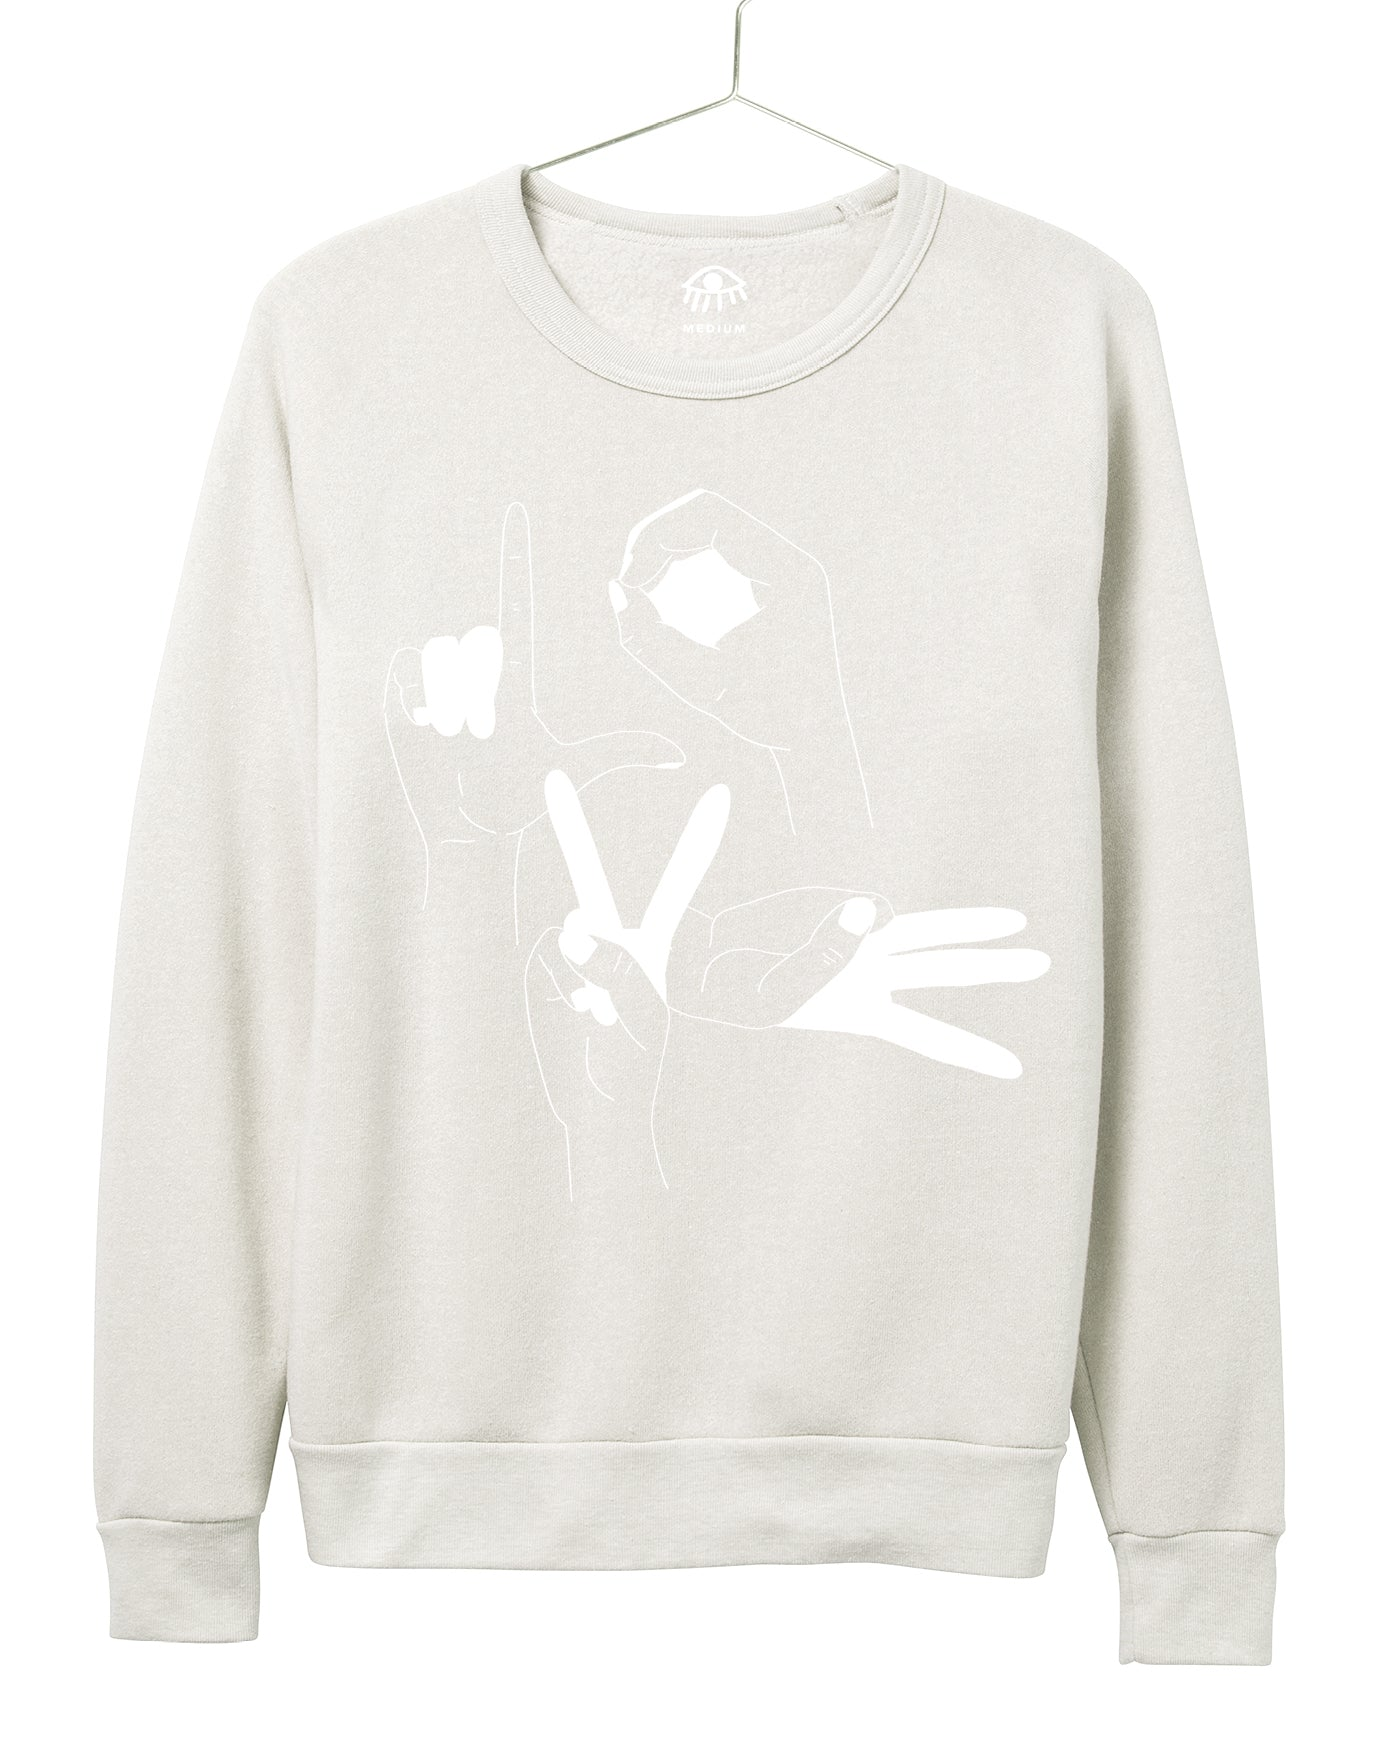 Love Mudra Women's Crewneck